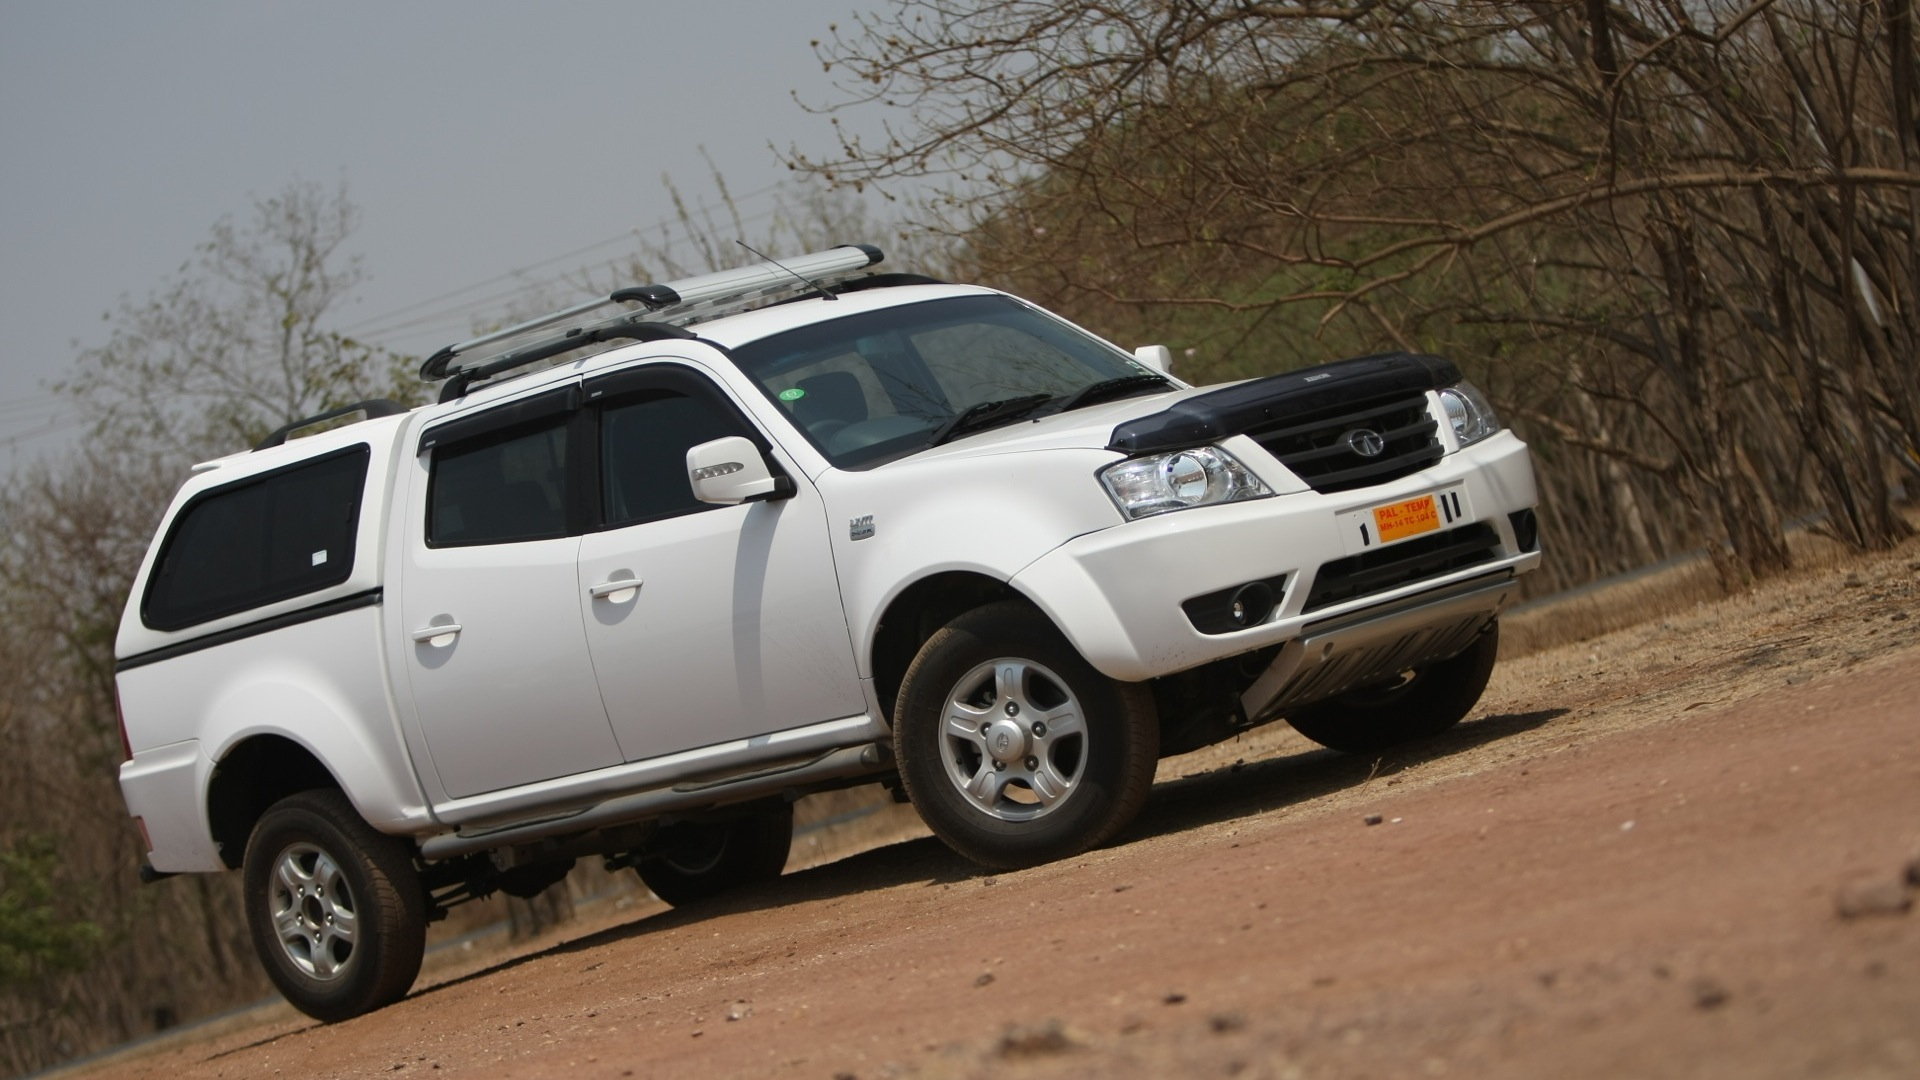 Tata Xenon 2013 Xt 4x4 Price Mileage Reviews Specification Gallery Overdrive